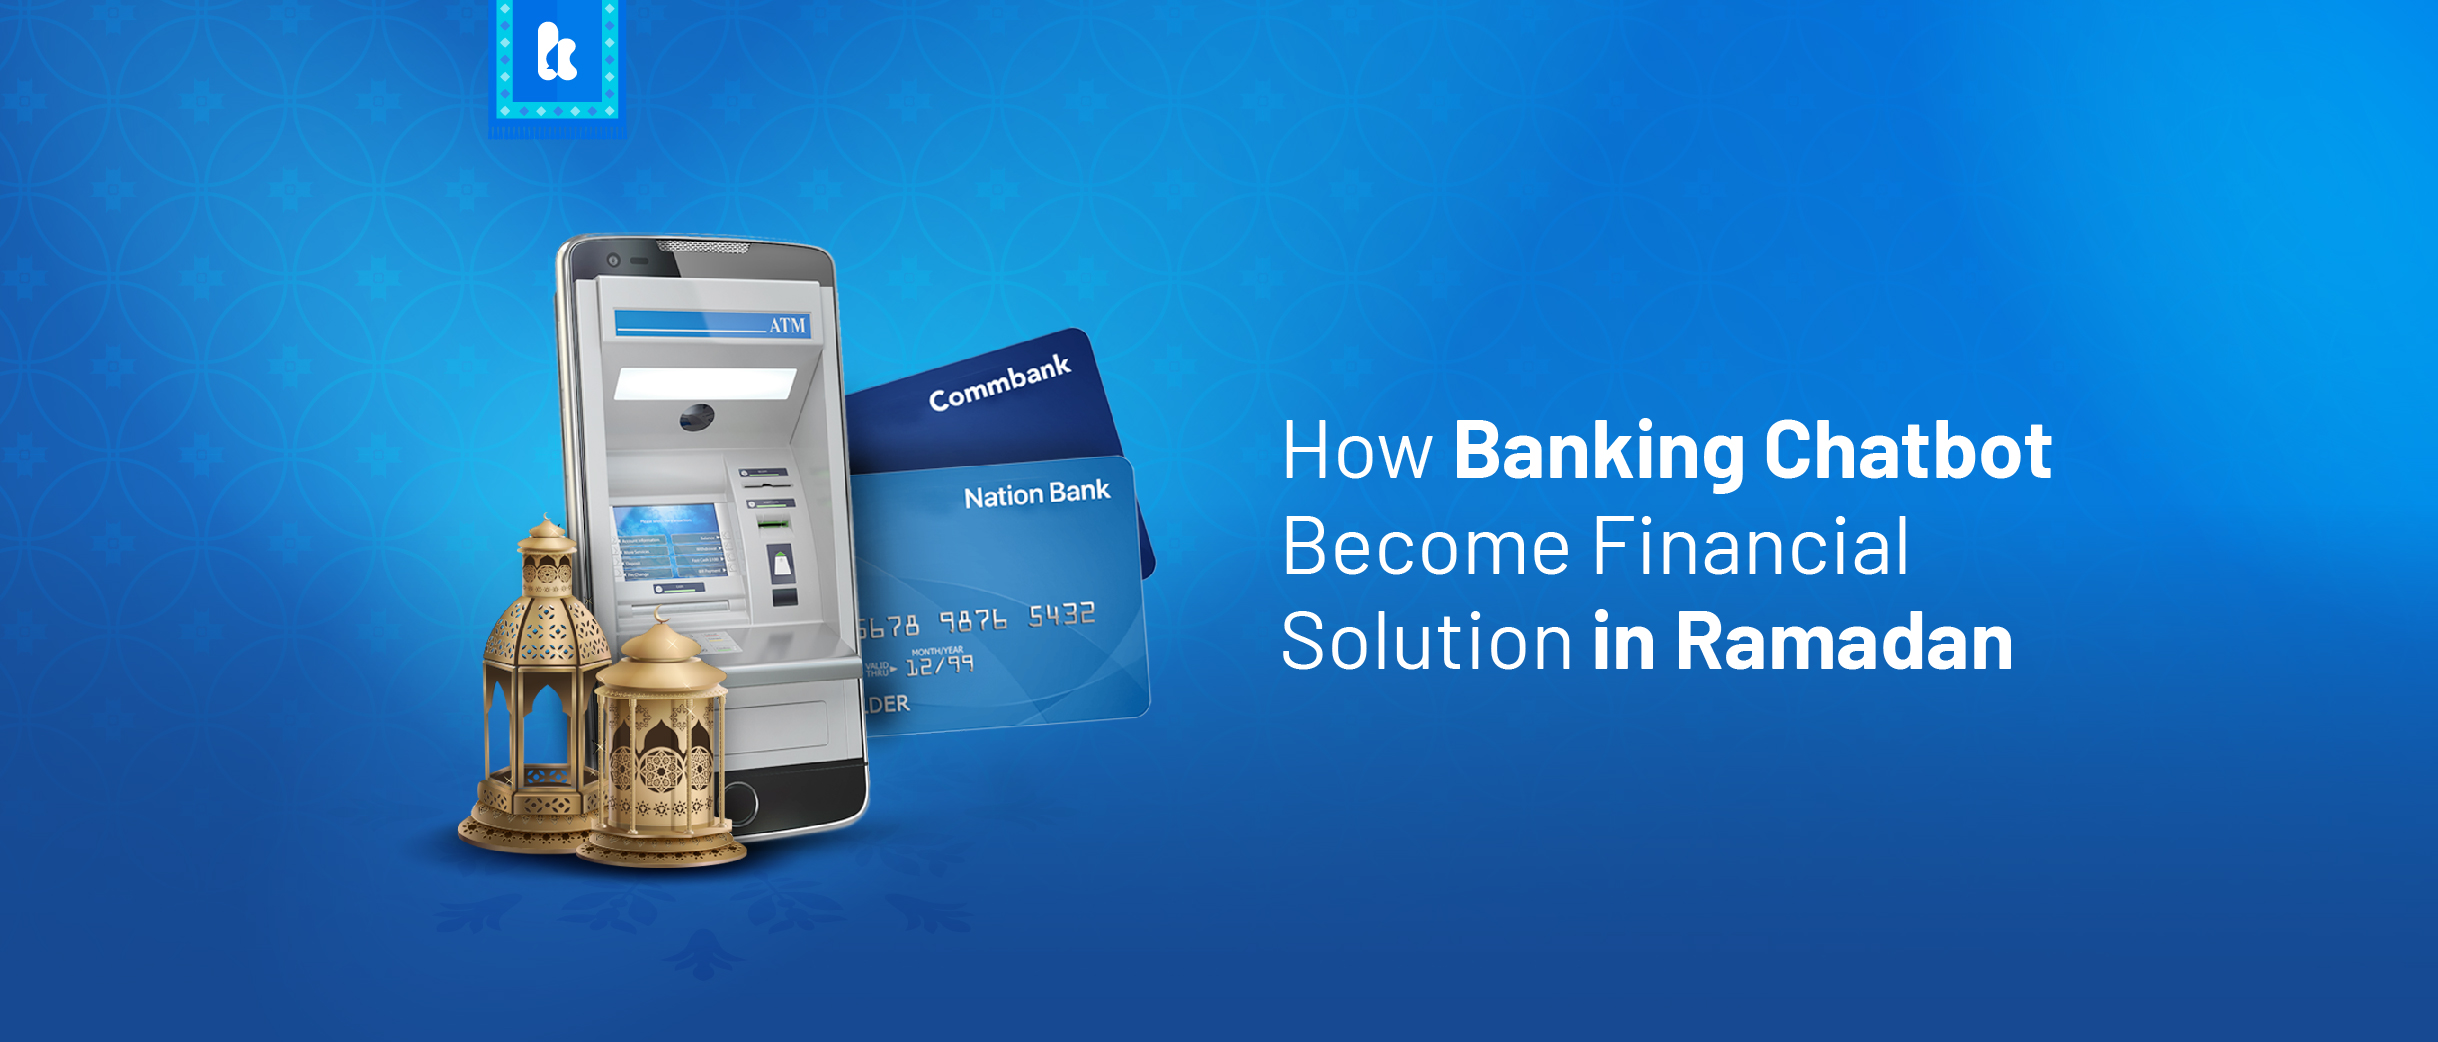 Banking chatbot become financial solution during ramadan.